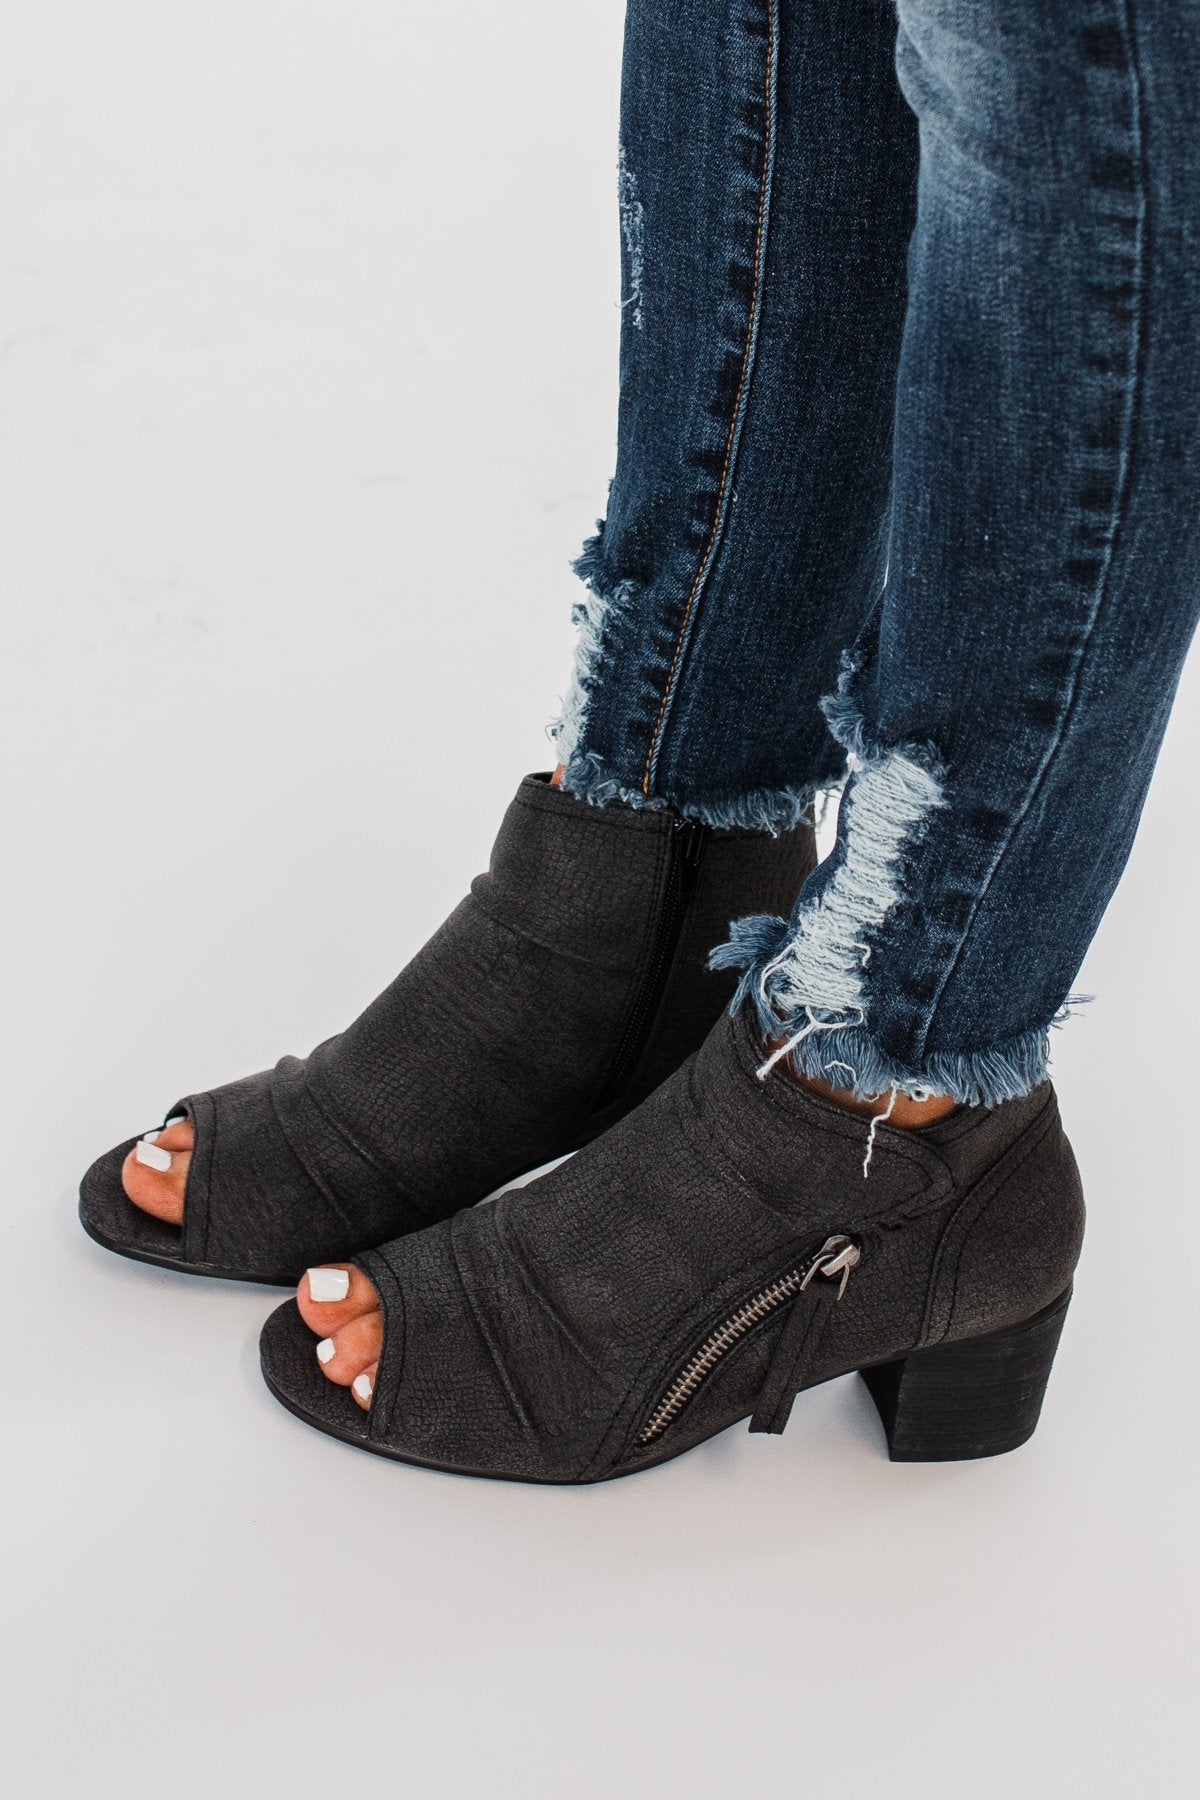 Very G Wonderluet Peep Toe Booties- Black